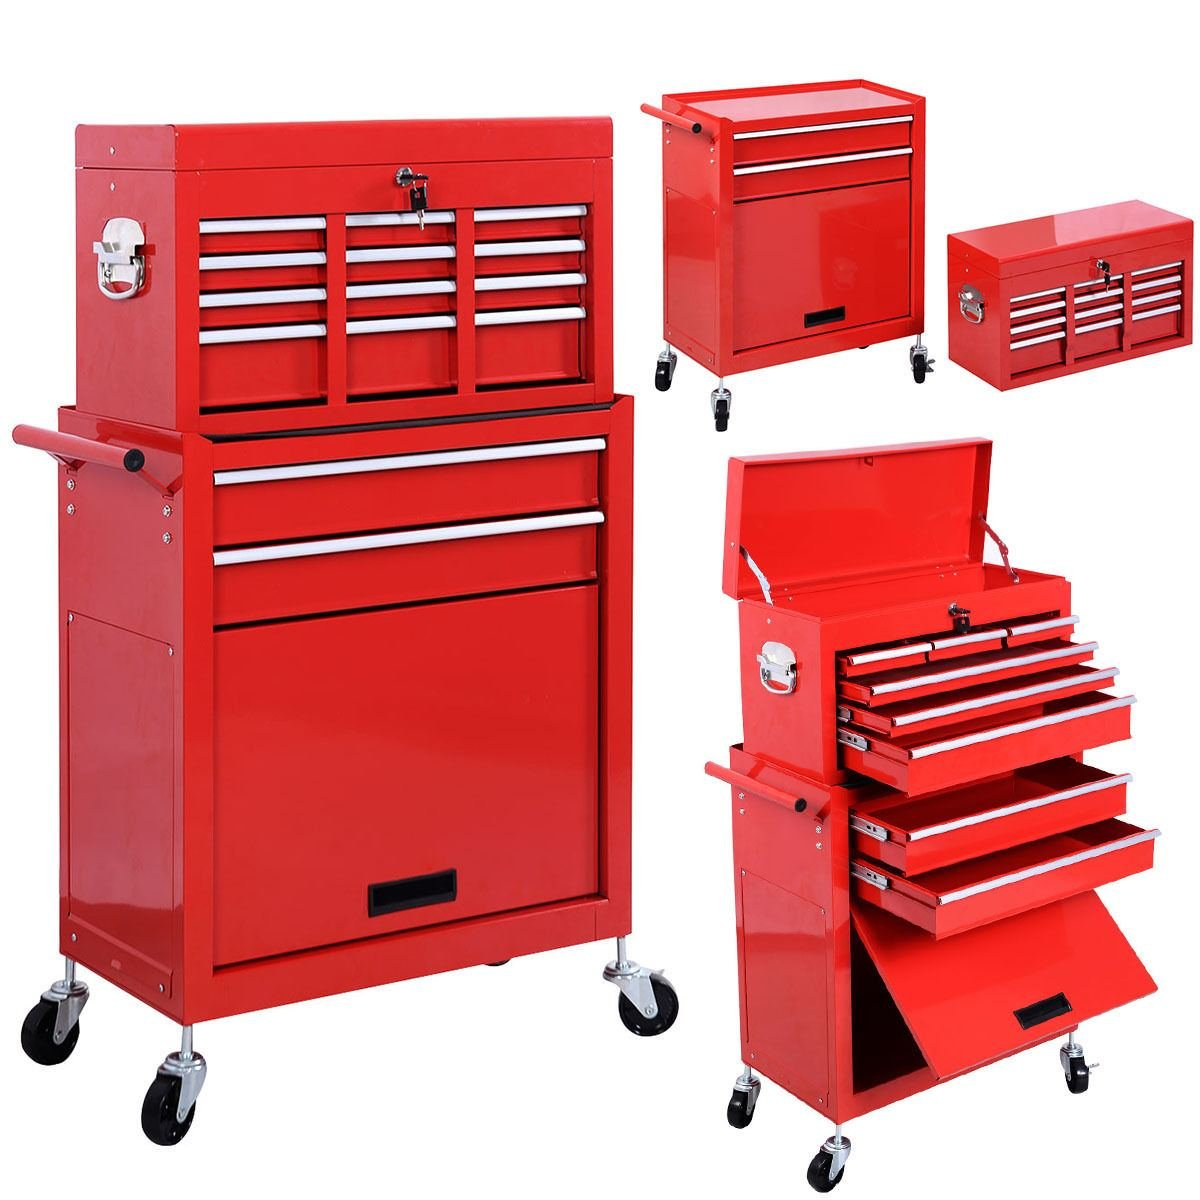 Alitop Removable Top Chest Box Rolling Tool Storage Cabinet Sliding by Alitop